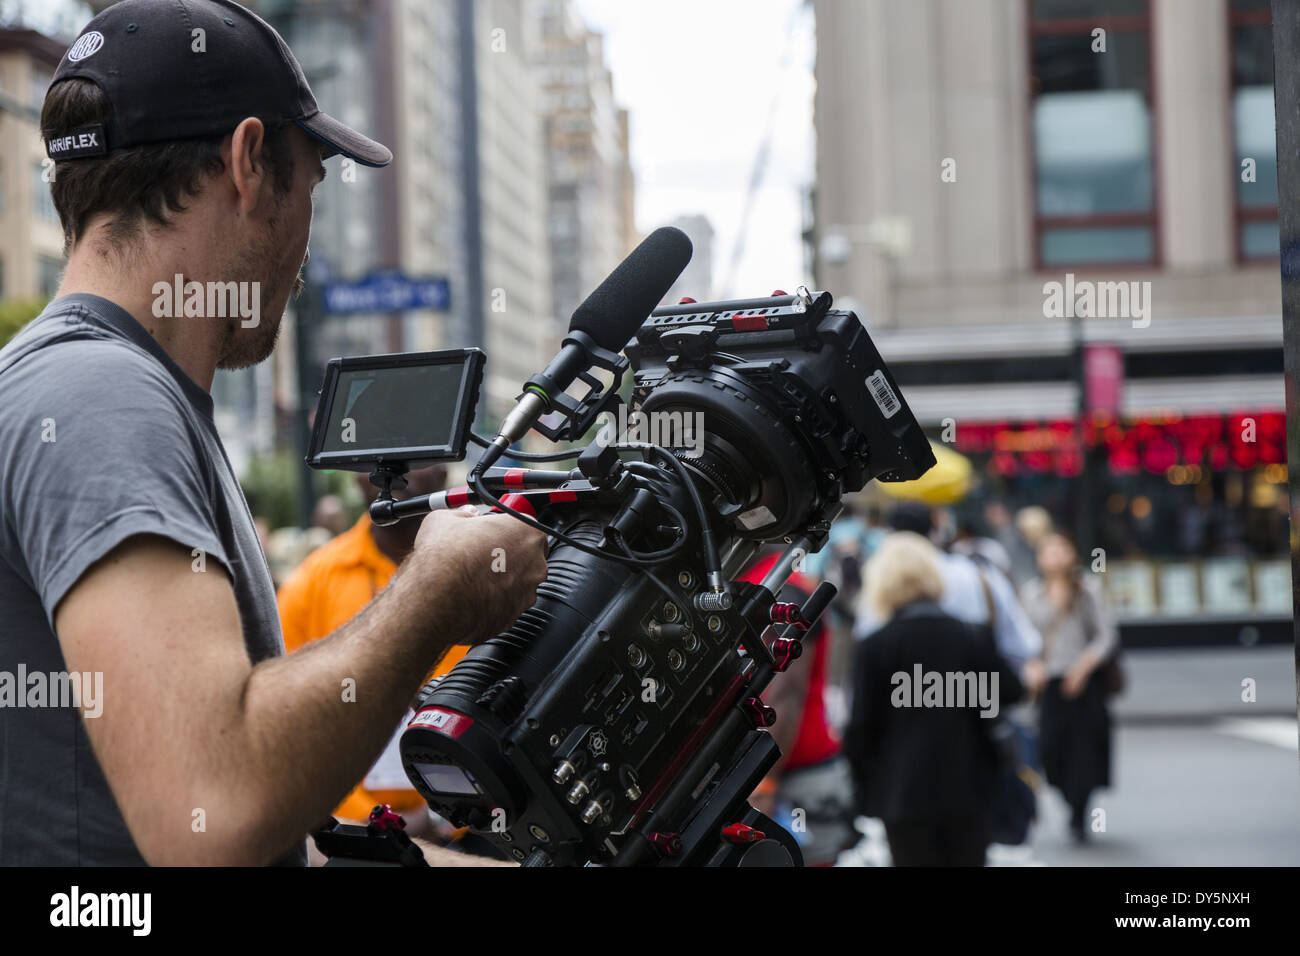 Cameraman working in the streets of New York with a Red One video camera - Stock Image